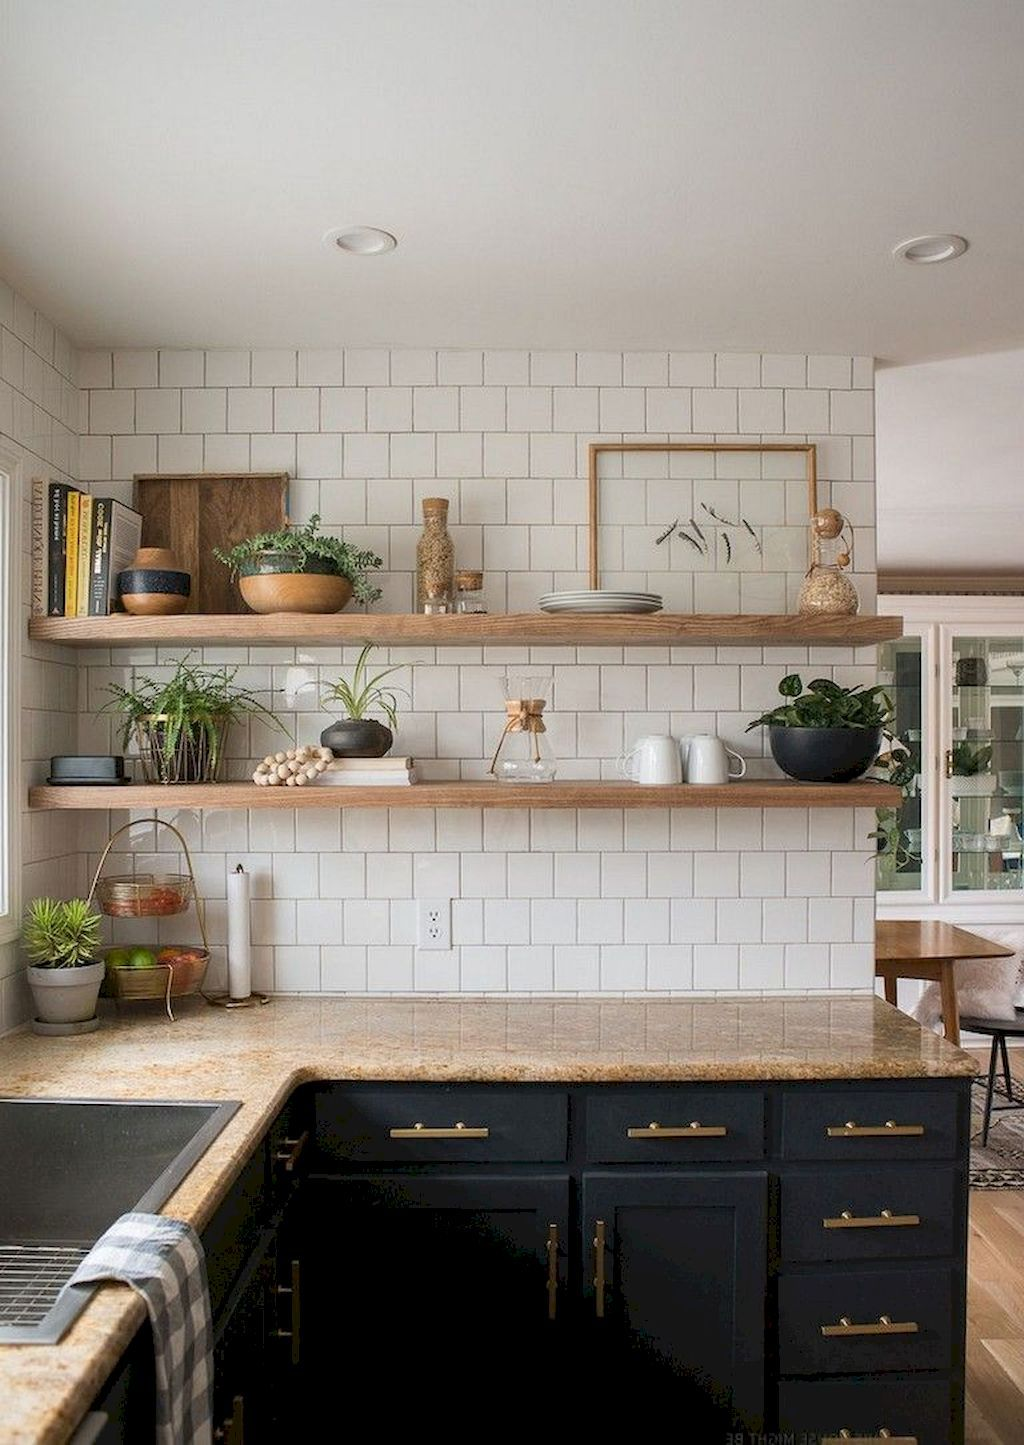 56 Awesome Farmhouse Kitchen Decor With Open Shelves Ideas Budget Kitchen Remodel Rustic Kitchen Kitchen Decor,Black White And Brown Living Room Ideas